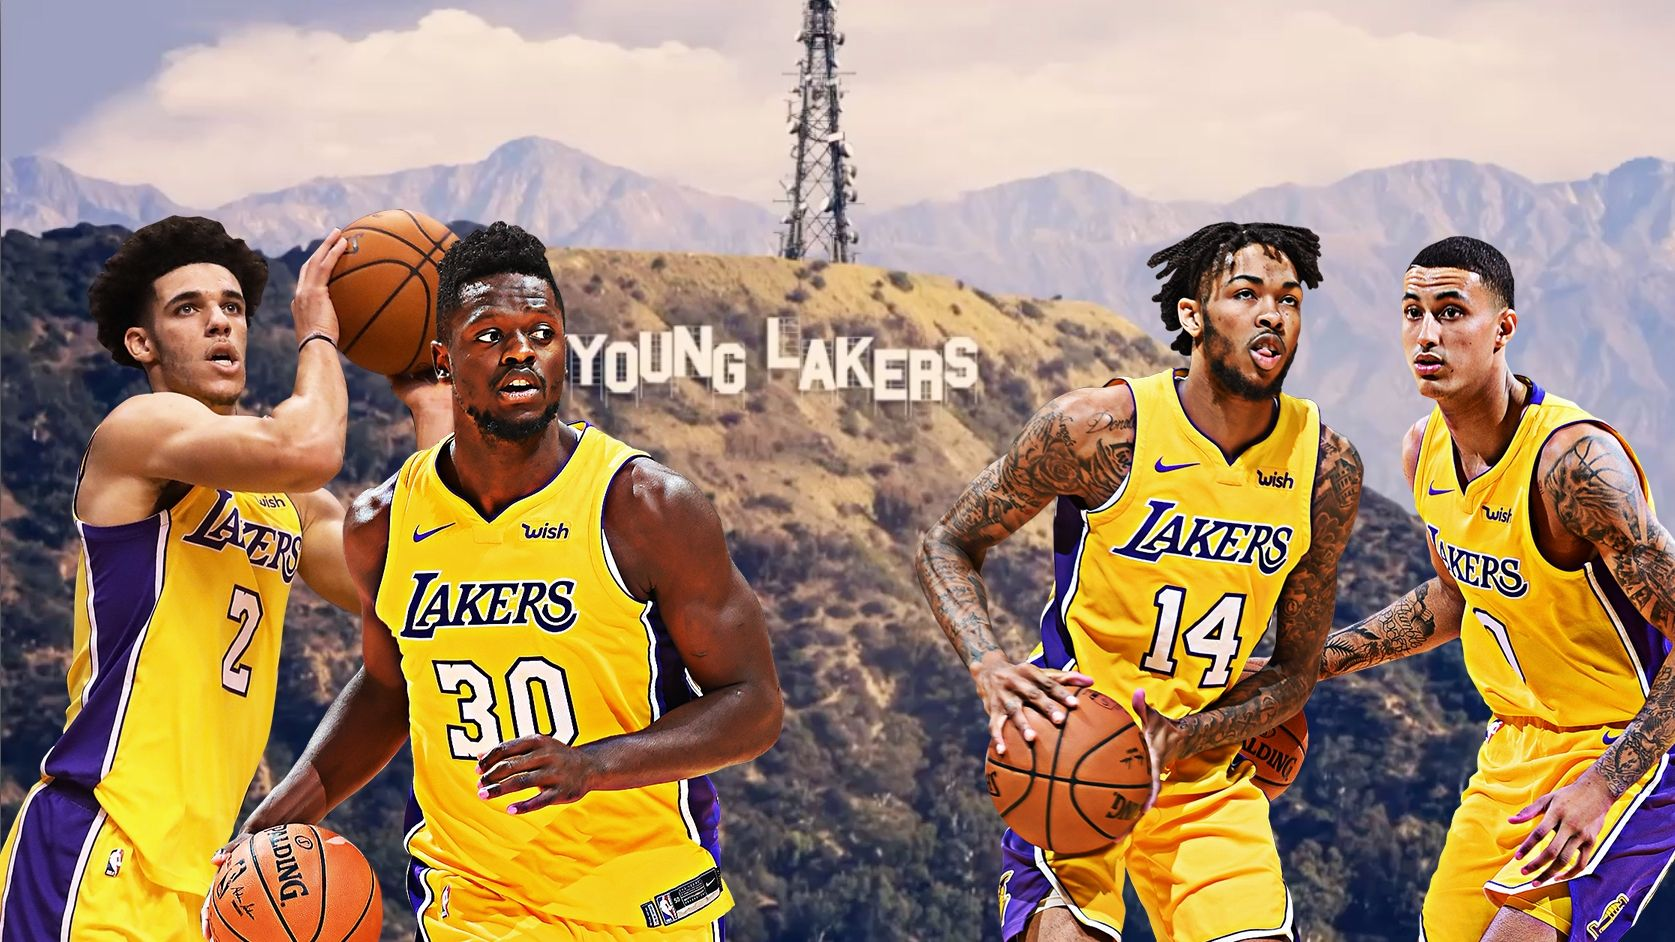 https://secure.espncdn.com/combiner/i?img=/media/motion/2018/0212/dm_180212_NBA_Lakers_young_core/dm_180212_NBA_Lakers_young_core.jpg